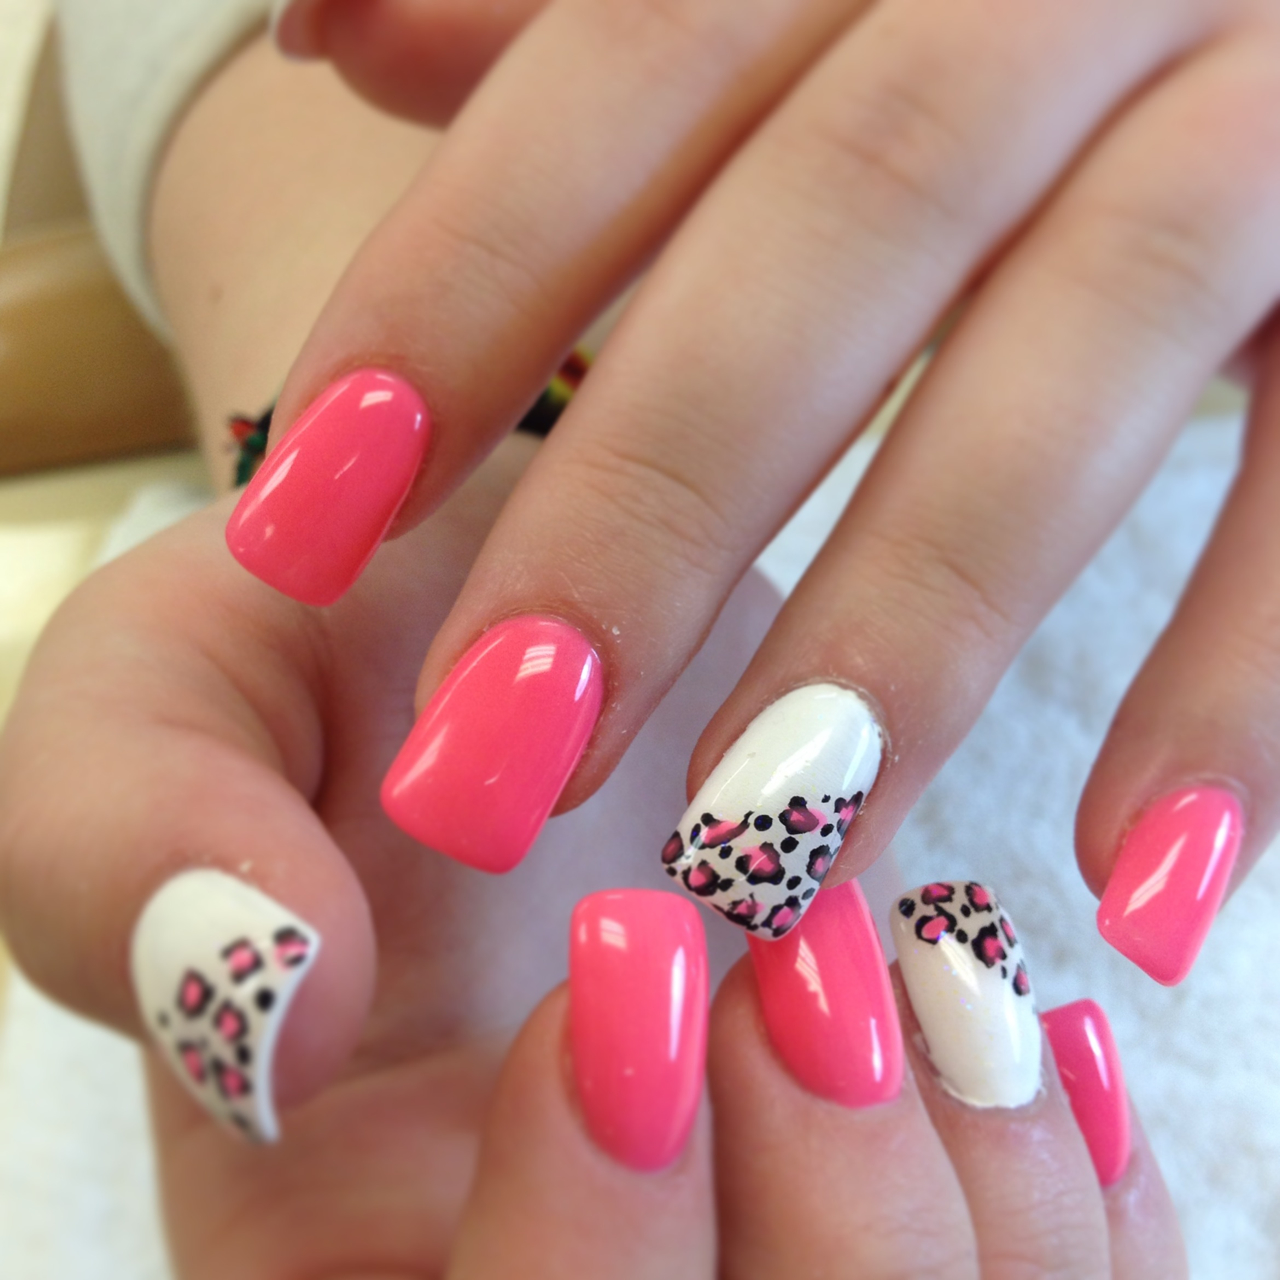 Acrylic nail art - Cute nail art designs to do at home ...